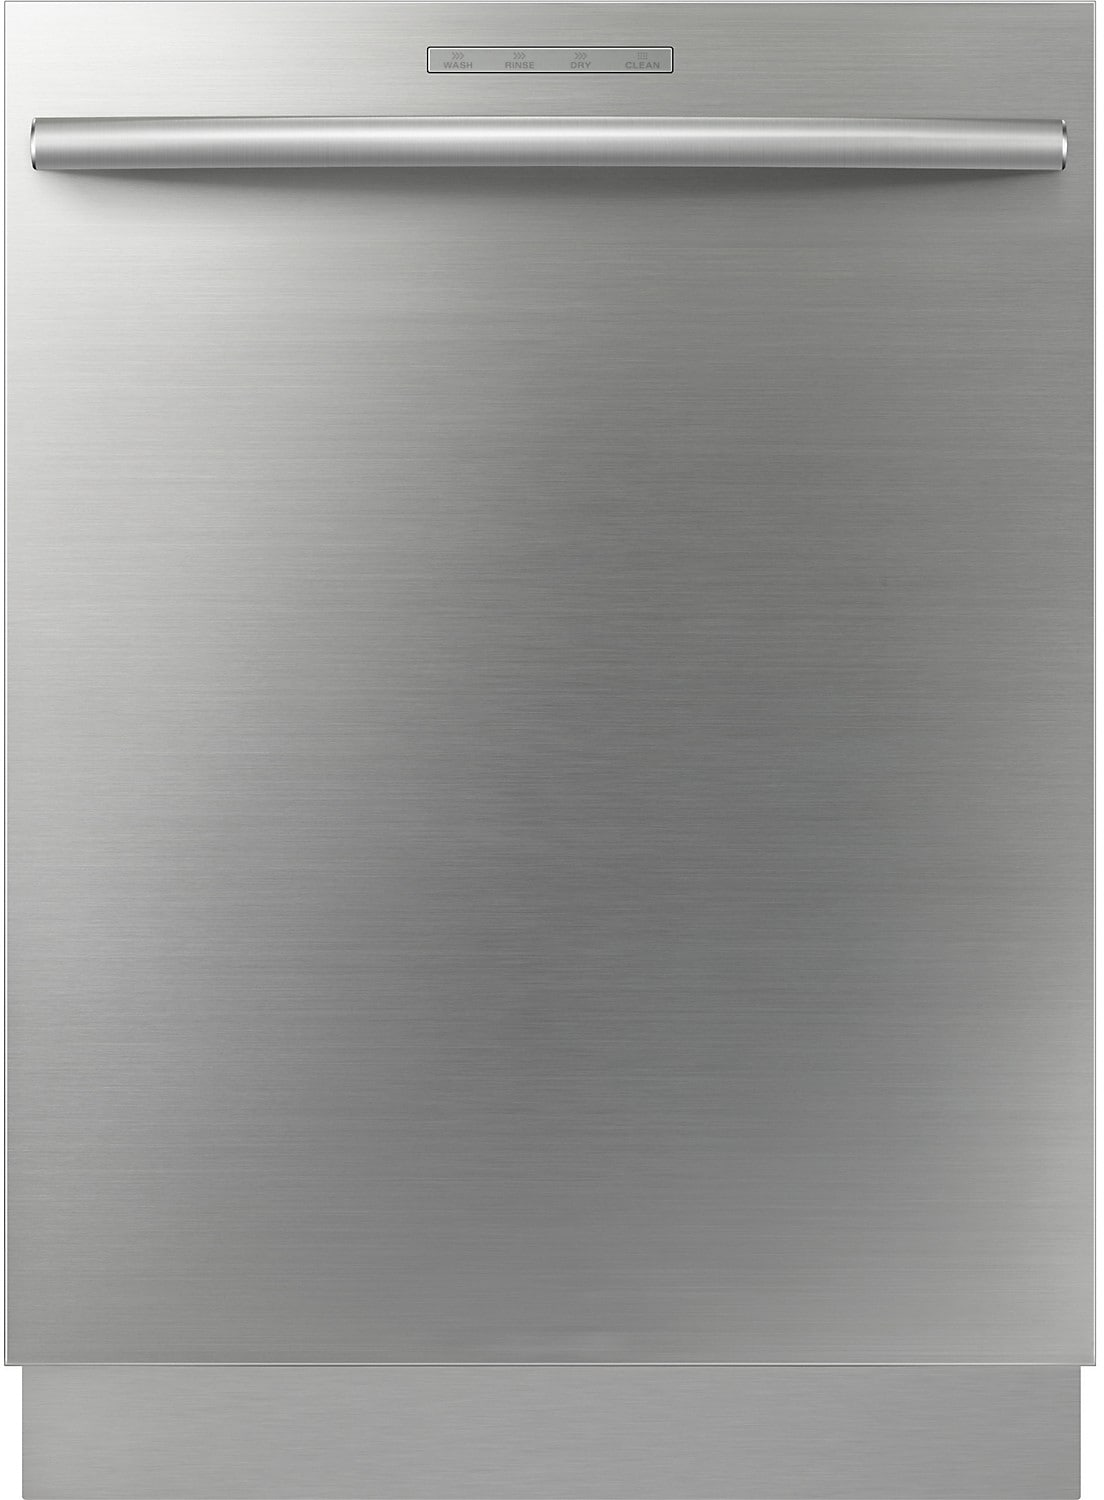 Clean up samsung 24 built in dishwasher with storm wash